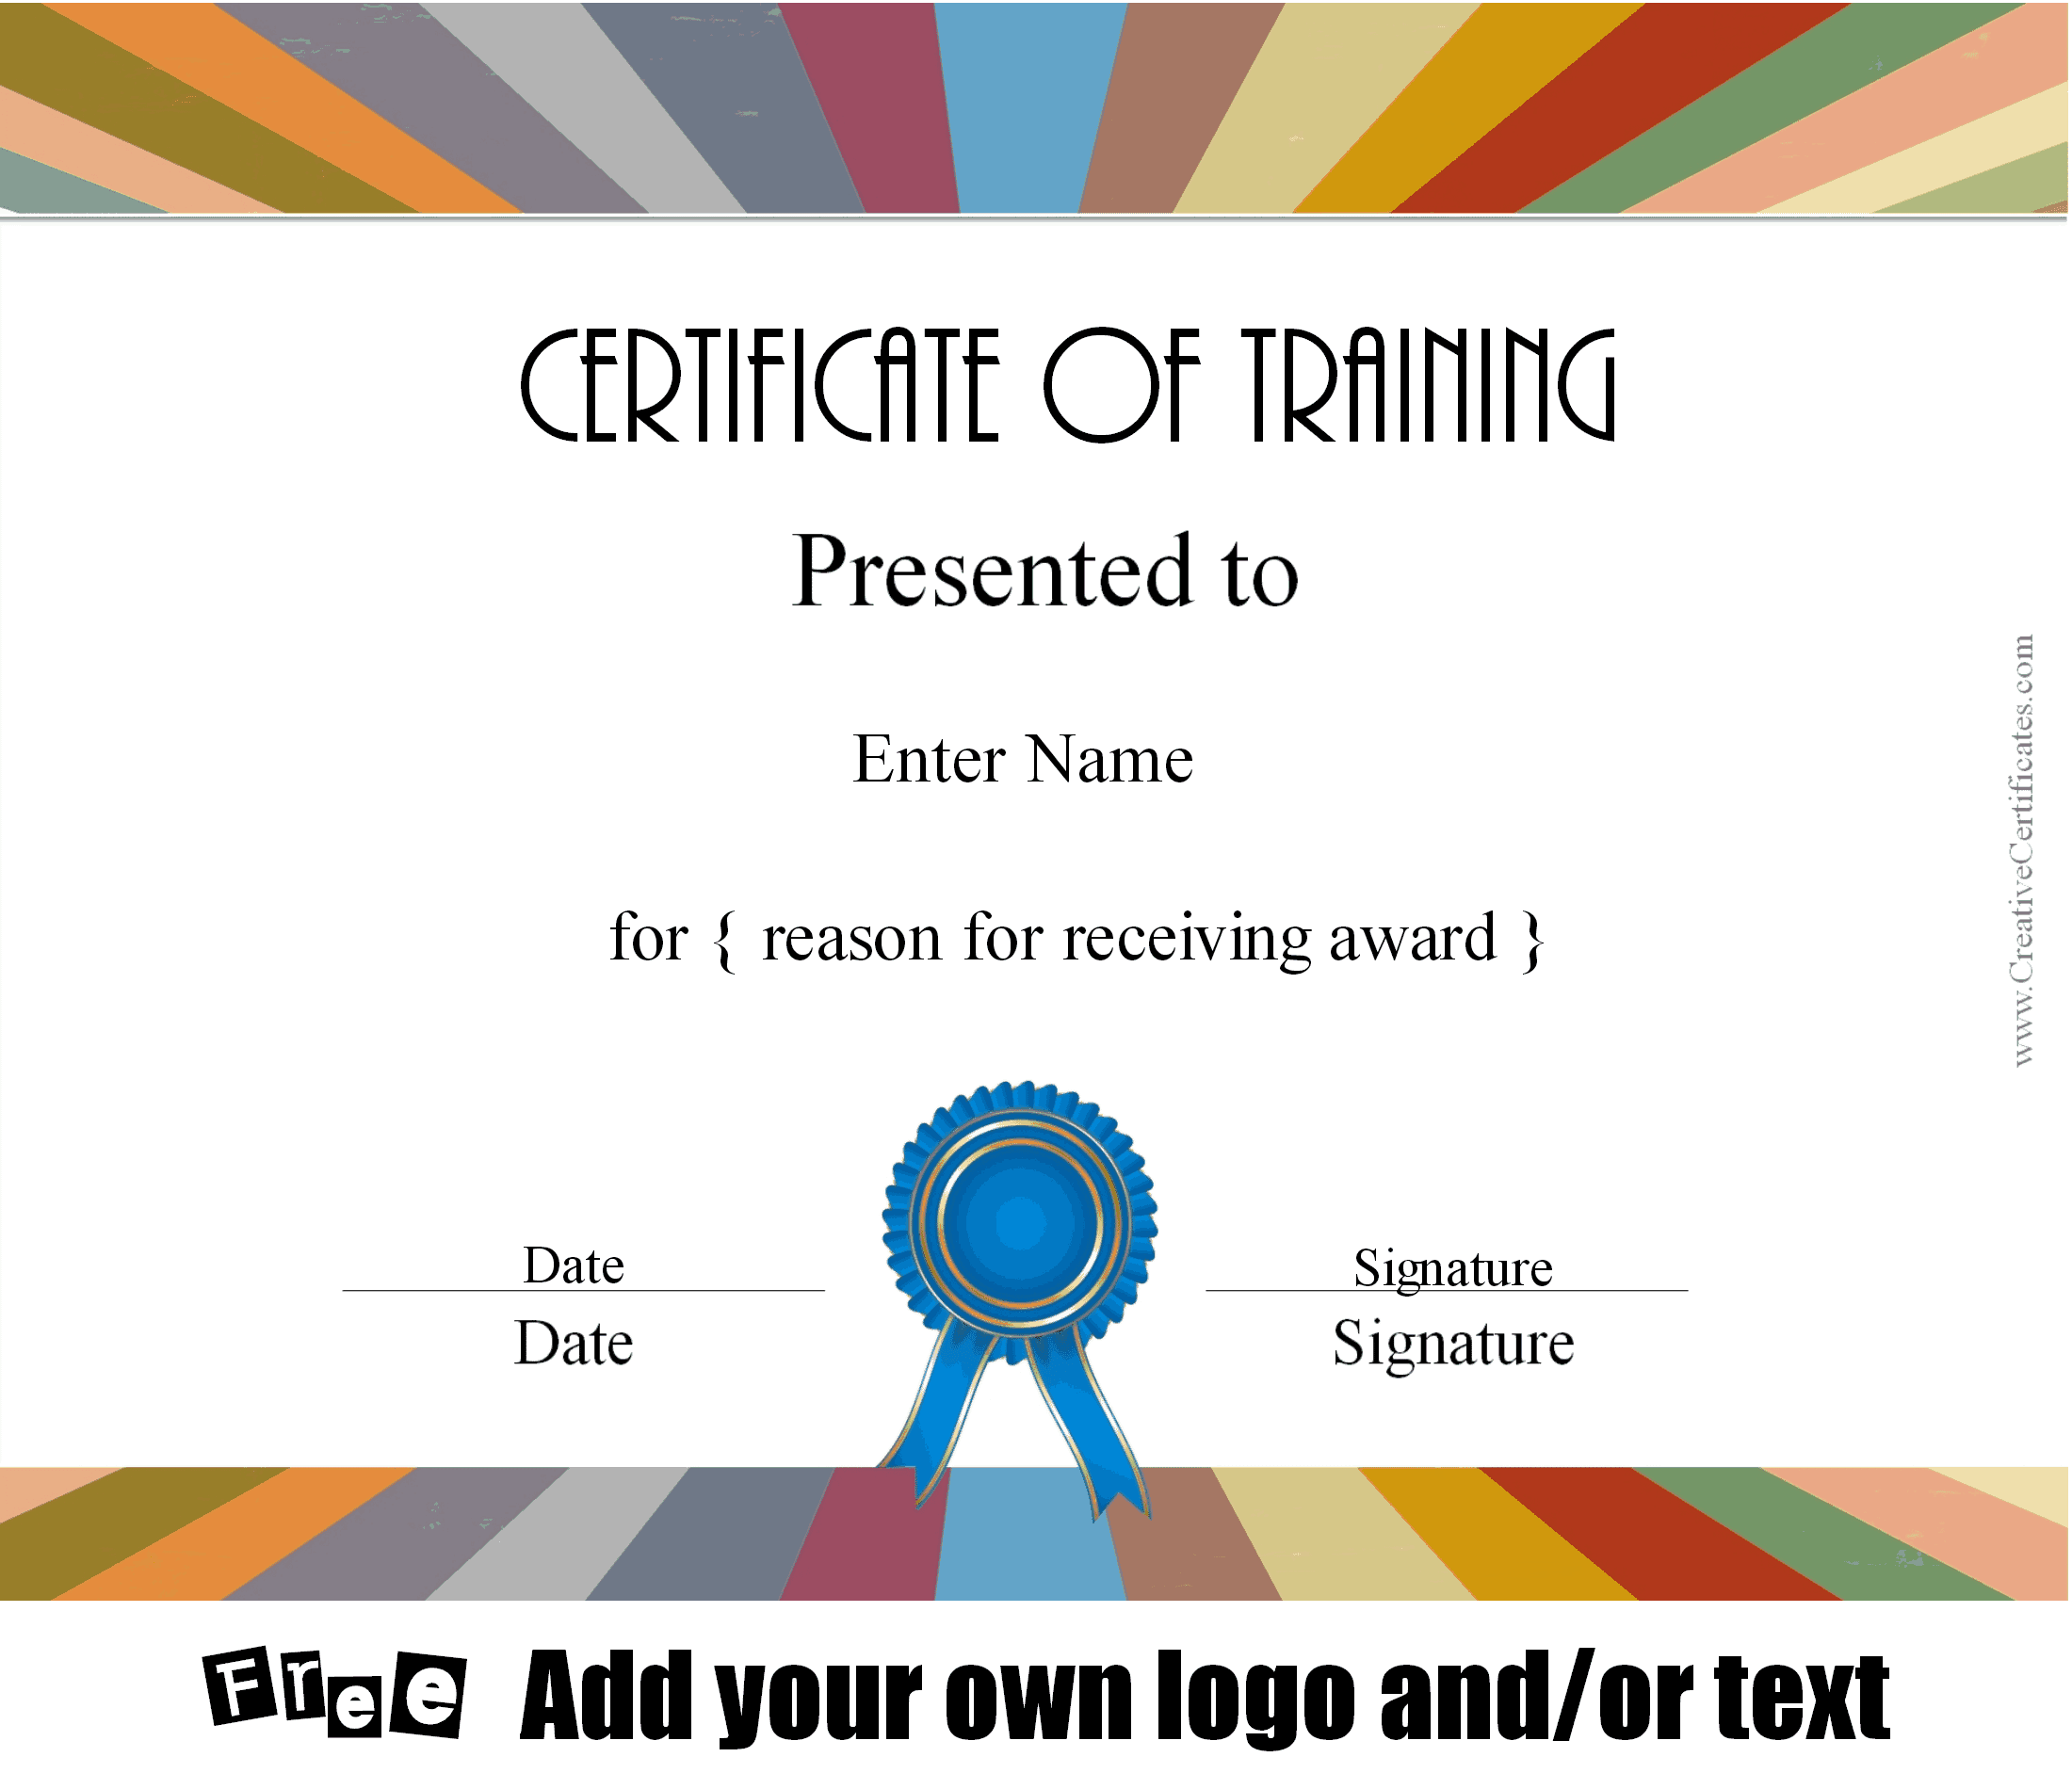 Doc636472 sample certificate of training private loan contract doc580456 certificate of training template 6 free training certificate of training certificate of training template yadclub Gallery